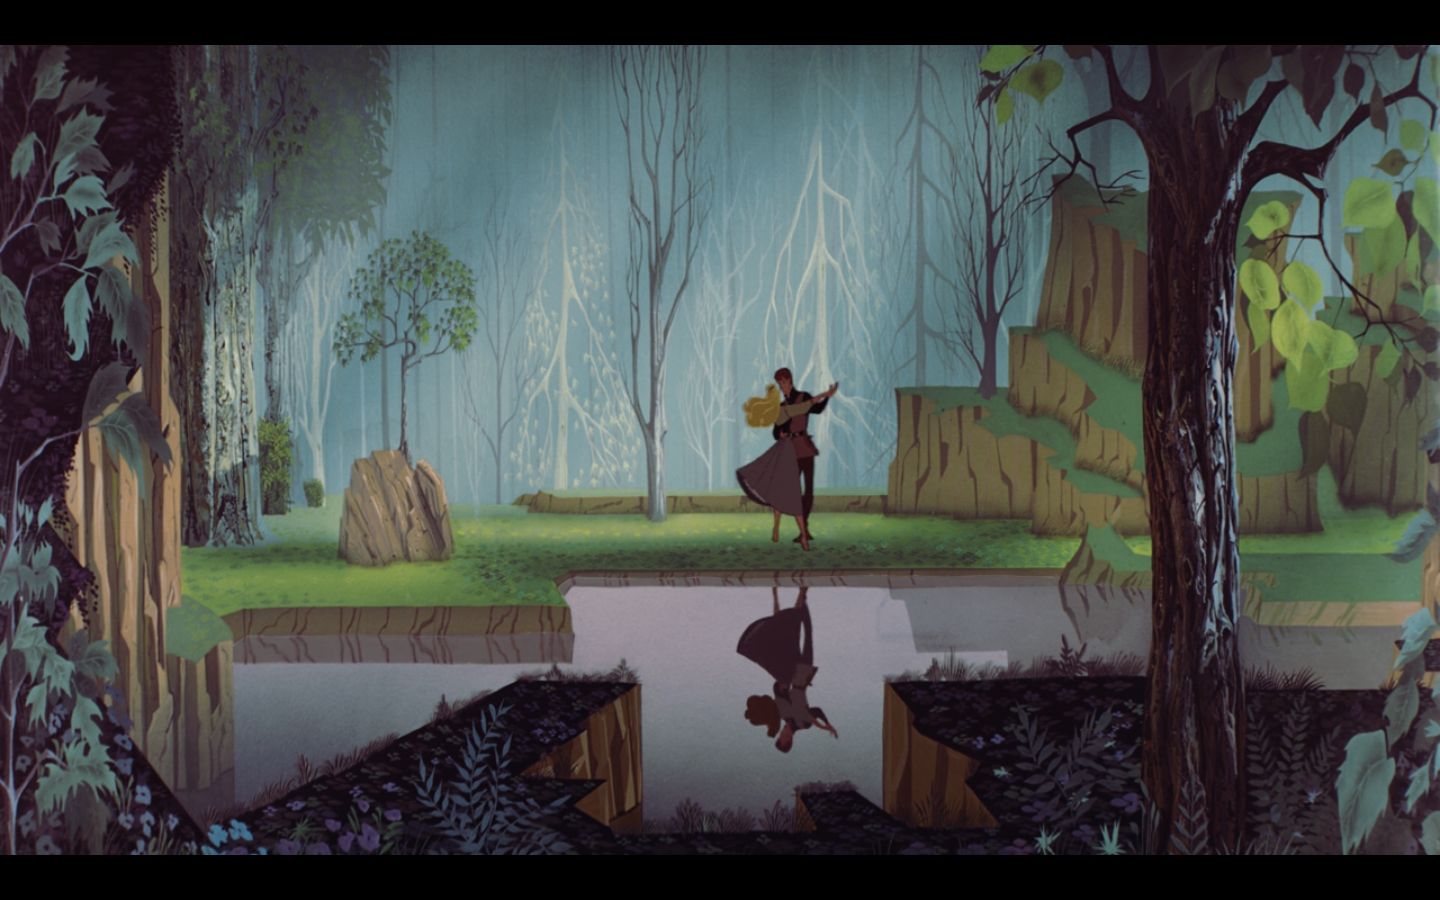 The awesome 13 disney songs odds thens - The hideout in the woods an artists dream ...